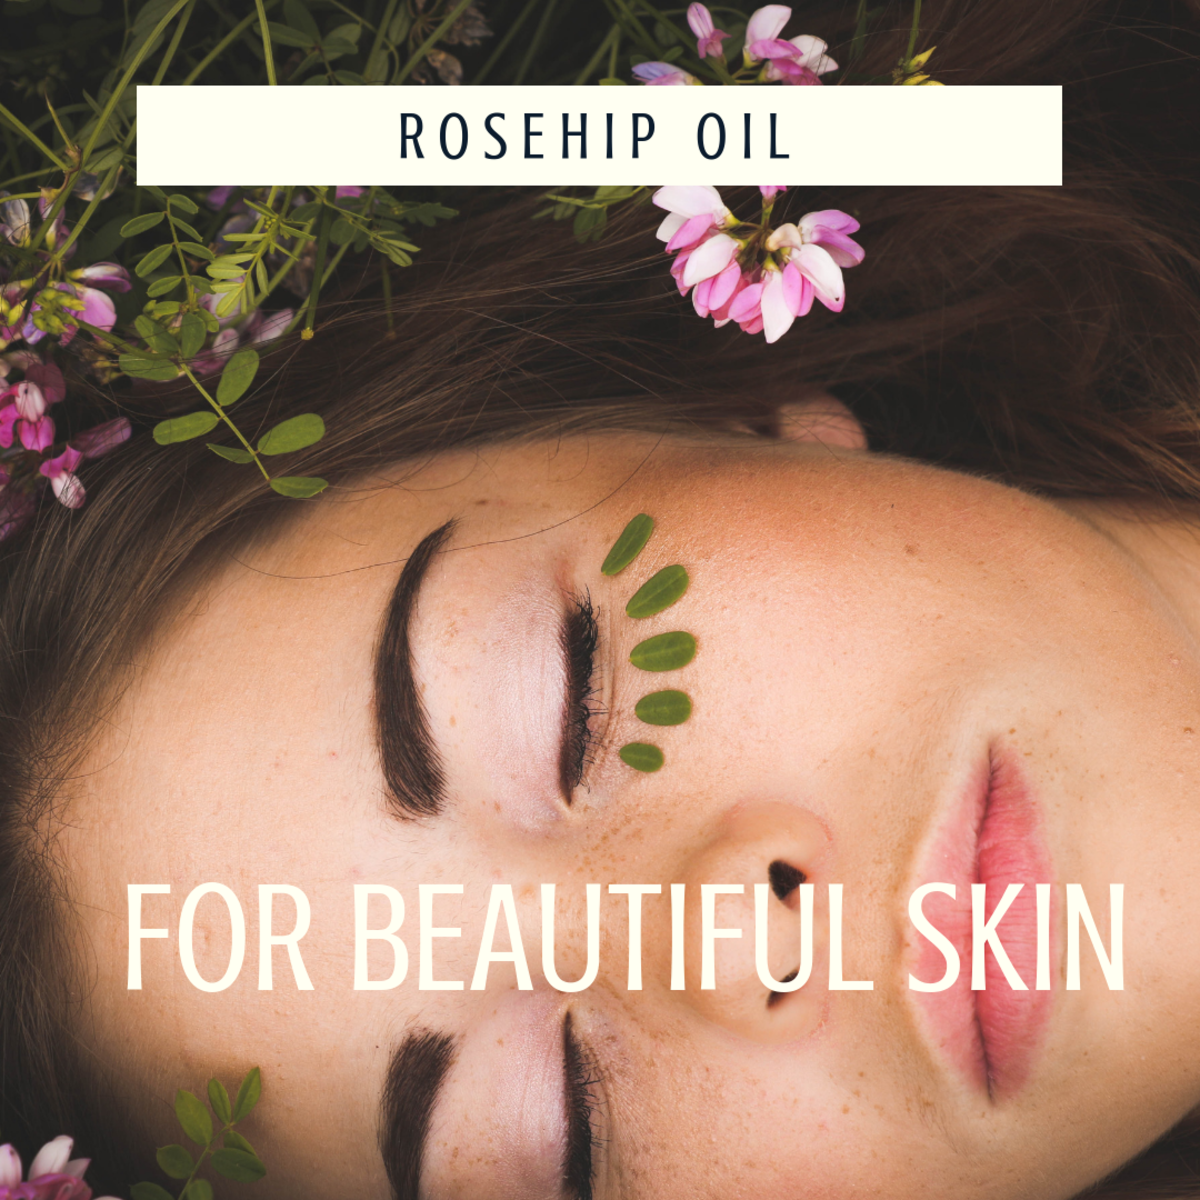 Get Rid of Acne Scars and Redness With Rosehip Oil